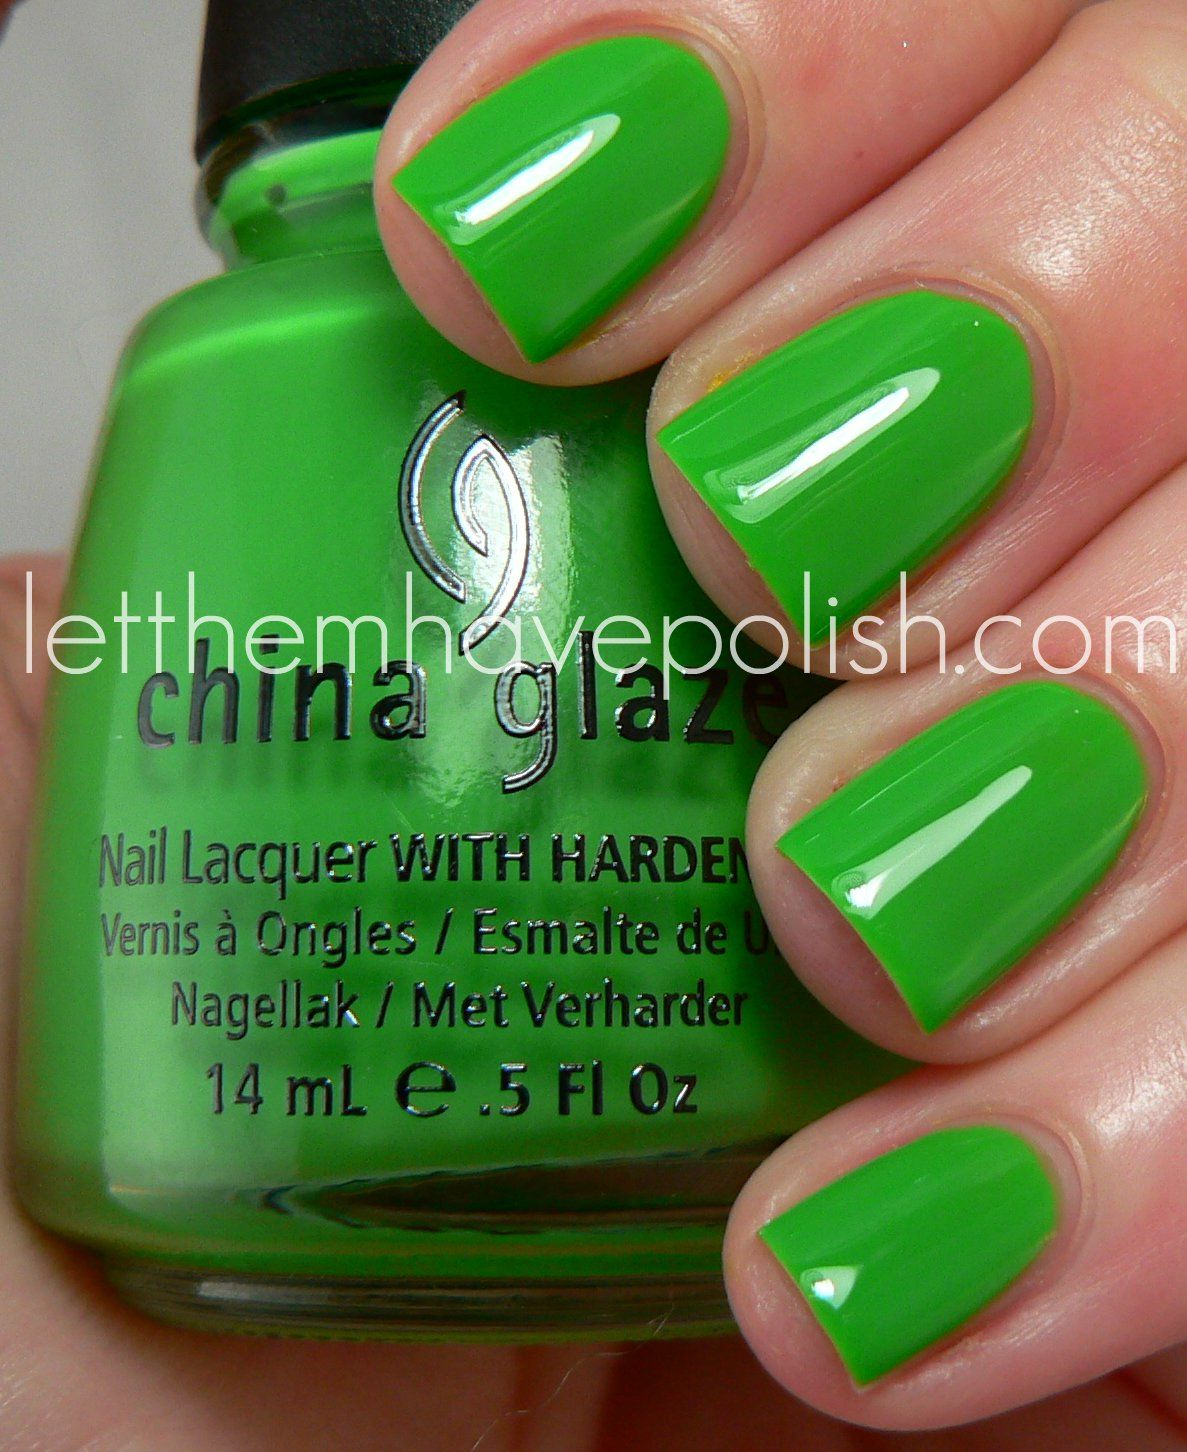 China glaze gaga for green my polish stash list pinterest china glaze gaga for green nvjuhfo Gallery